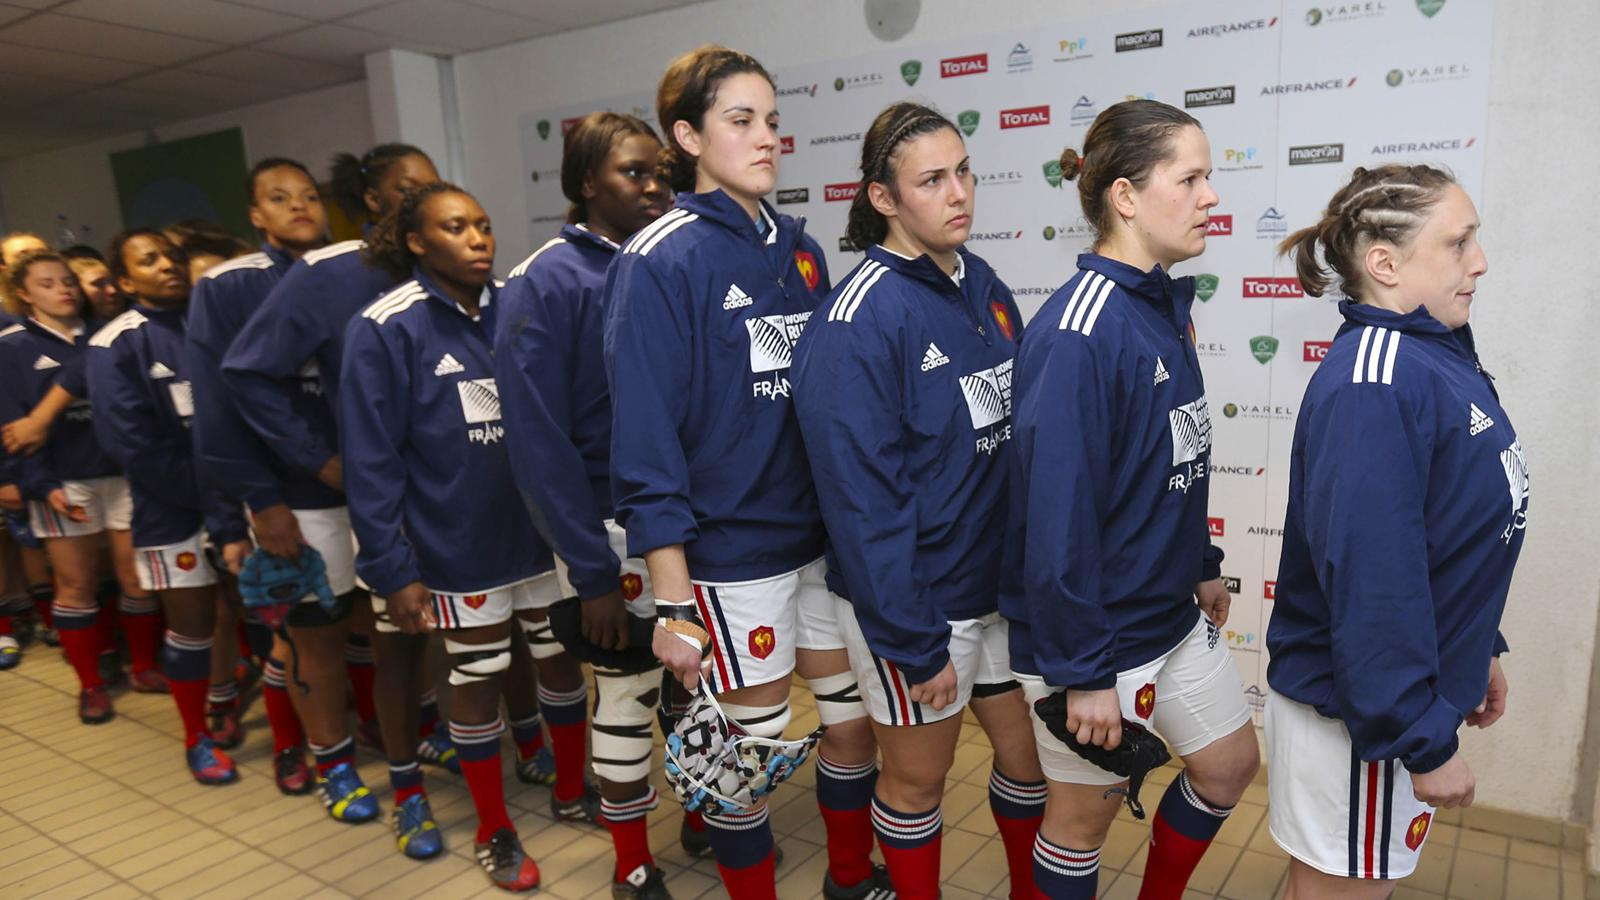 Match Rugby France Canada en direct live streaming